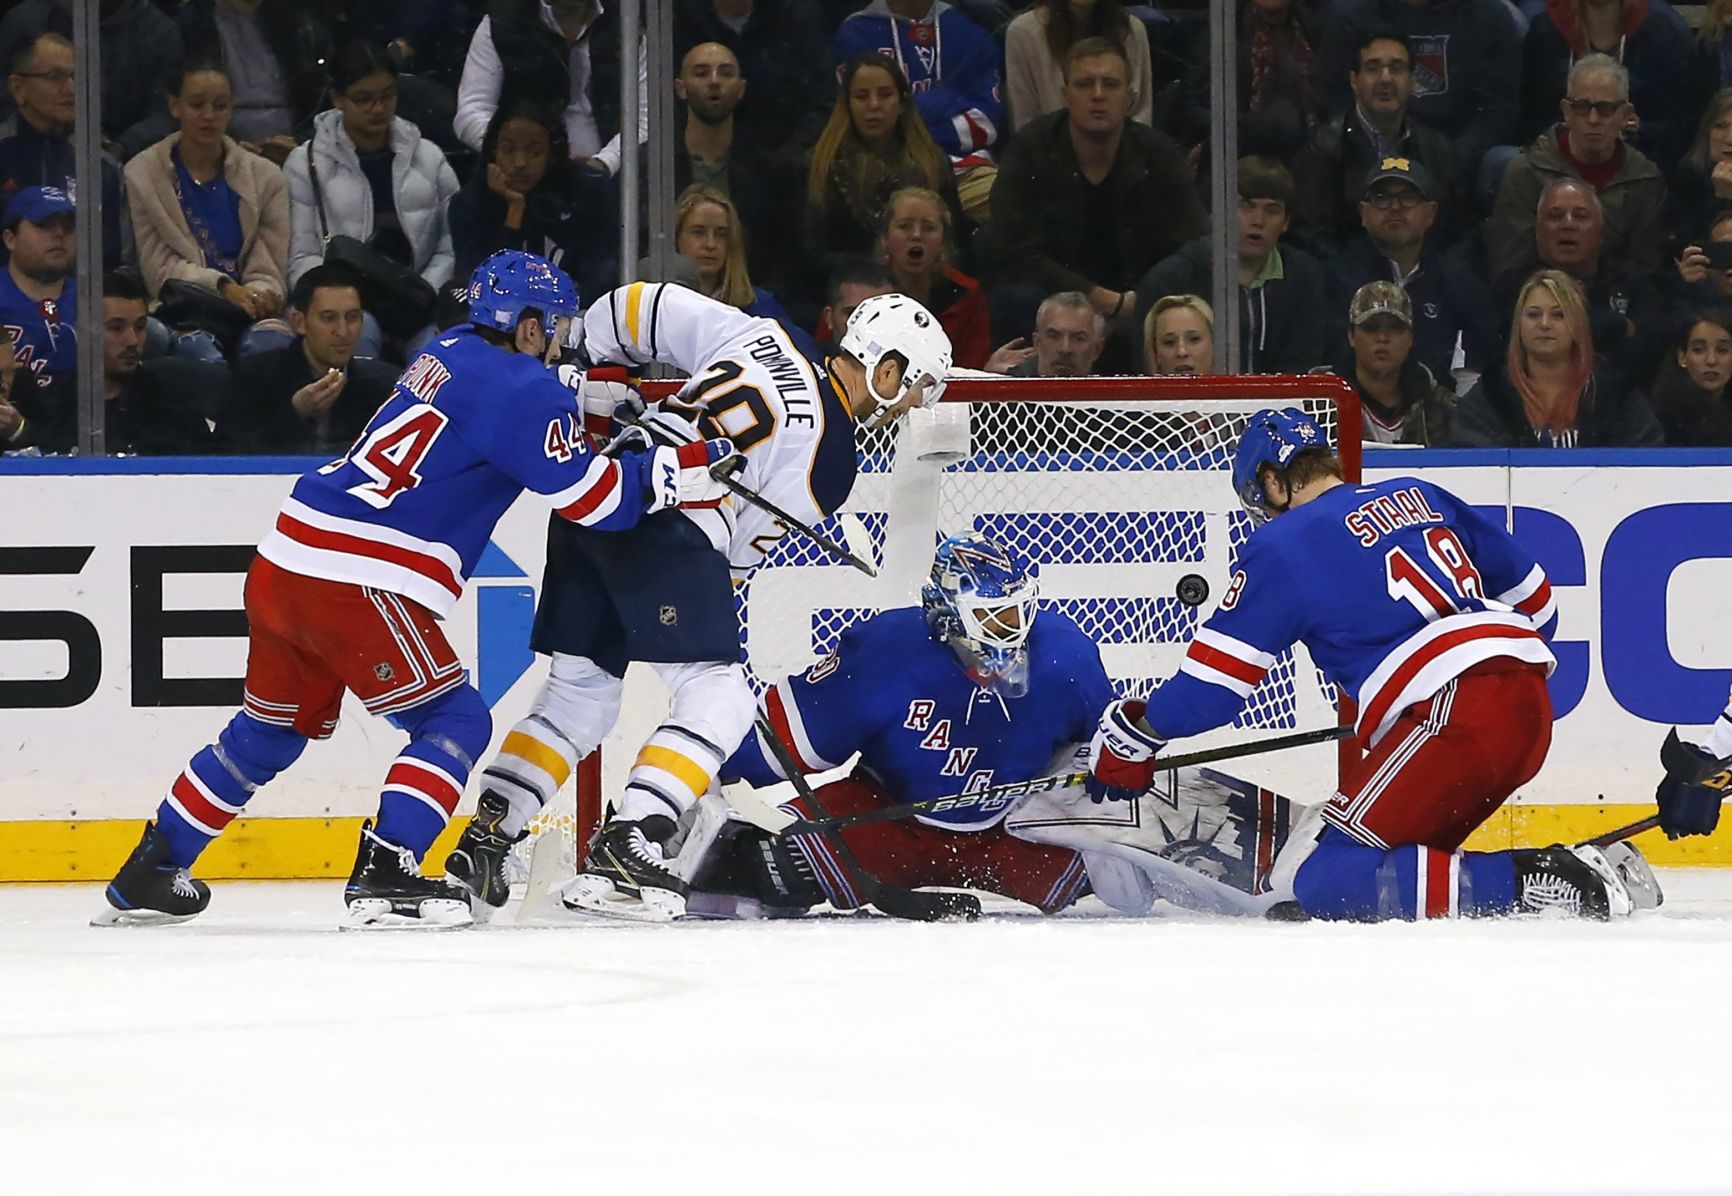 Marc Duchesne Hockey Nhl Lundqvist Vesey Lead Rangers Past Sabres Hockey Stltoday